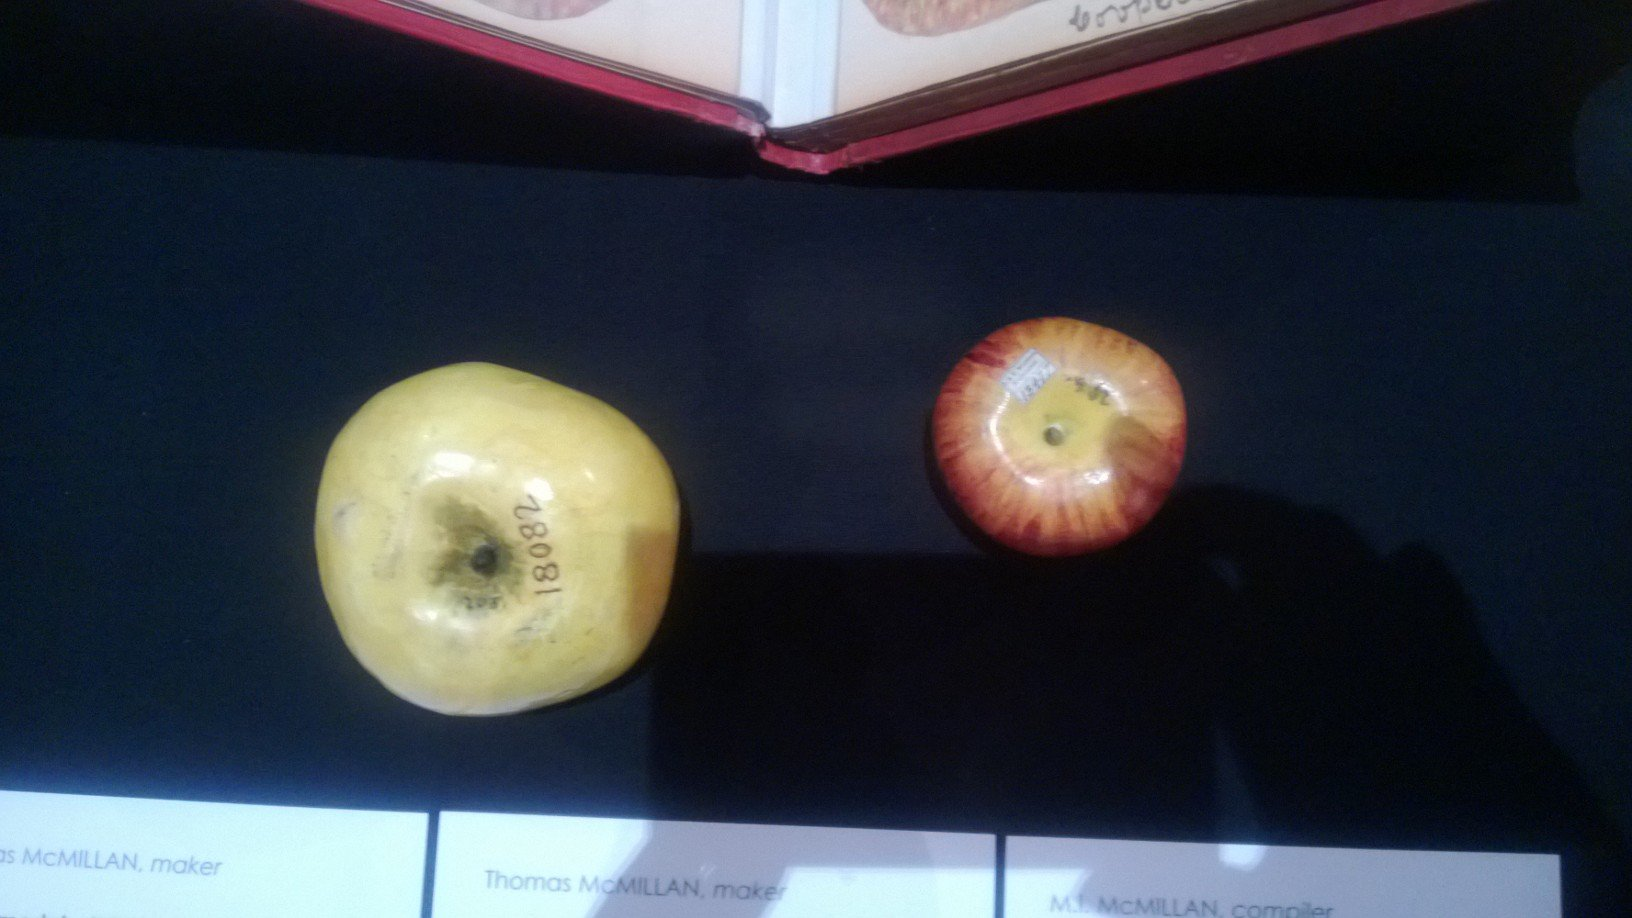 Thomas McMillan, maker.  Apple model – Winter Majetin, Hazelglen, Victoria, 1875.   Wax, pigment.  On loan from Museum Victoria.  The Technological and Industrial Museum's economic botany collection recorded and advertised the economic potential of Australia's agricultural products.  Among these were fruit and vegetables.  In order to demonstrate Victoria's capacity in this area of production, and in the absence of colour photography, the museum commissioned wax models of local specimens.  Trained model makers, many of whom were women, worked in the museum laboratory making models that documented healthy, diseased and unusual examples of fruit and vegetables.  These were placed on permanent display for the education of the general public.  This model is of a Winter Majetin, a cooking apple, which was grown by Charles Draper of Hazelglen in 1875 (Hazelglen was then the district name, later being named Arthurs Creek and Doreen).  Photo taken by Bruce G. Draper at the Royal Botanic Gardens, Kew, England, in the 1990s